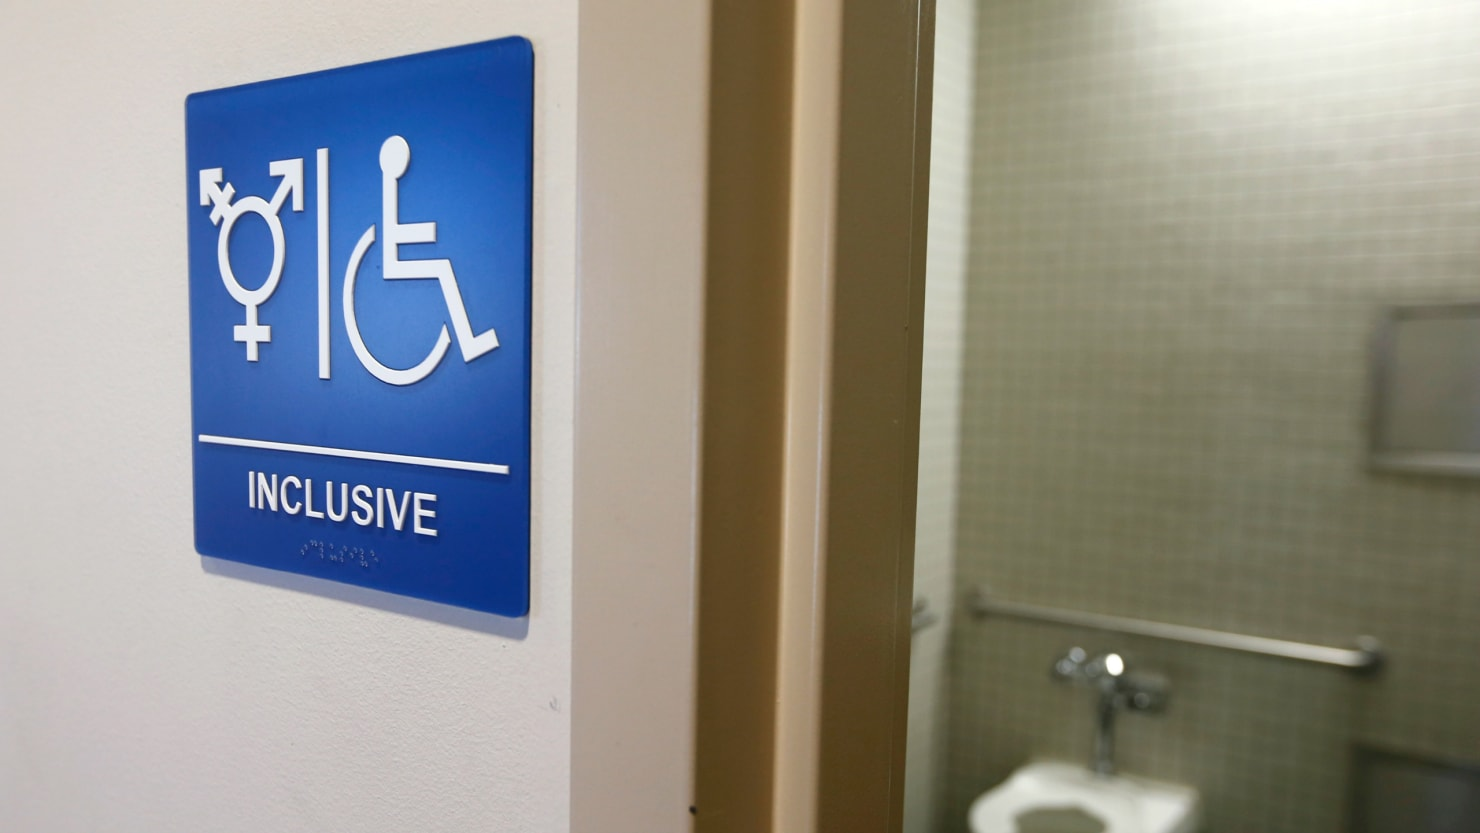 Trump's Ed. Dept. tp ignoer transgender bathroom complaints